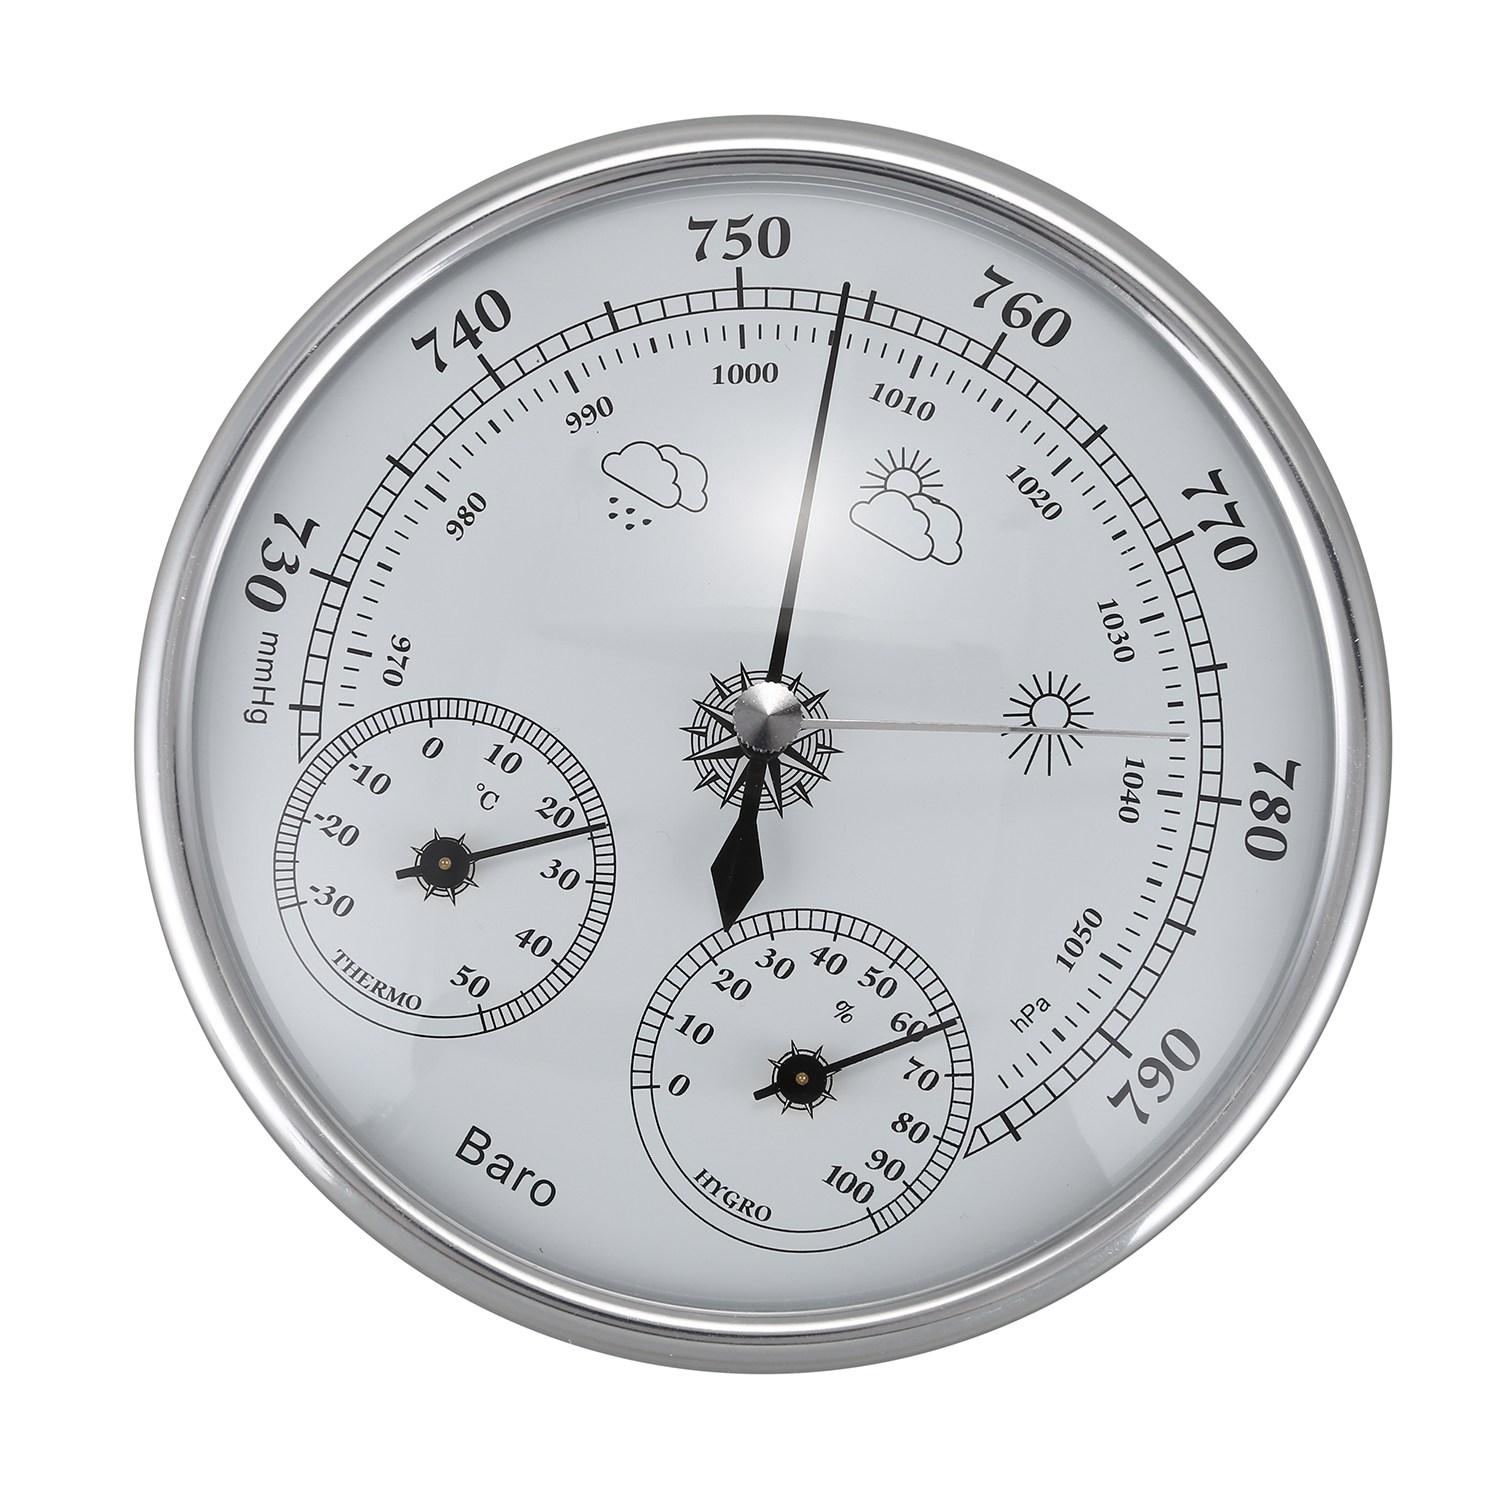 Wall Mounted Household Thermometer Hygrometer High Accuracy Pressure Gauge Air Weather Instrument Barometer By Ertic.